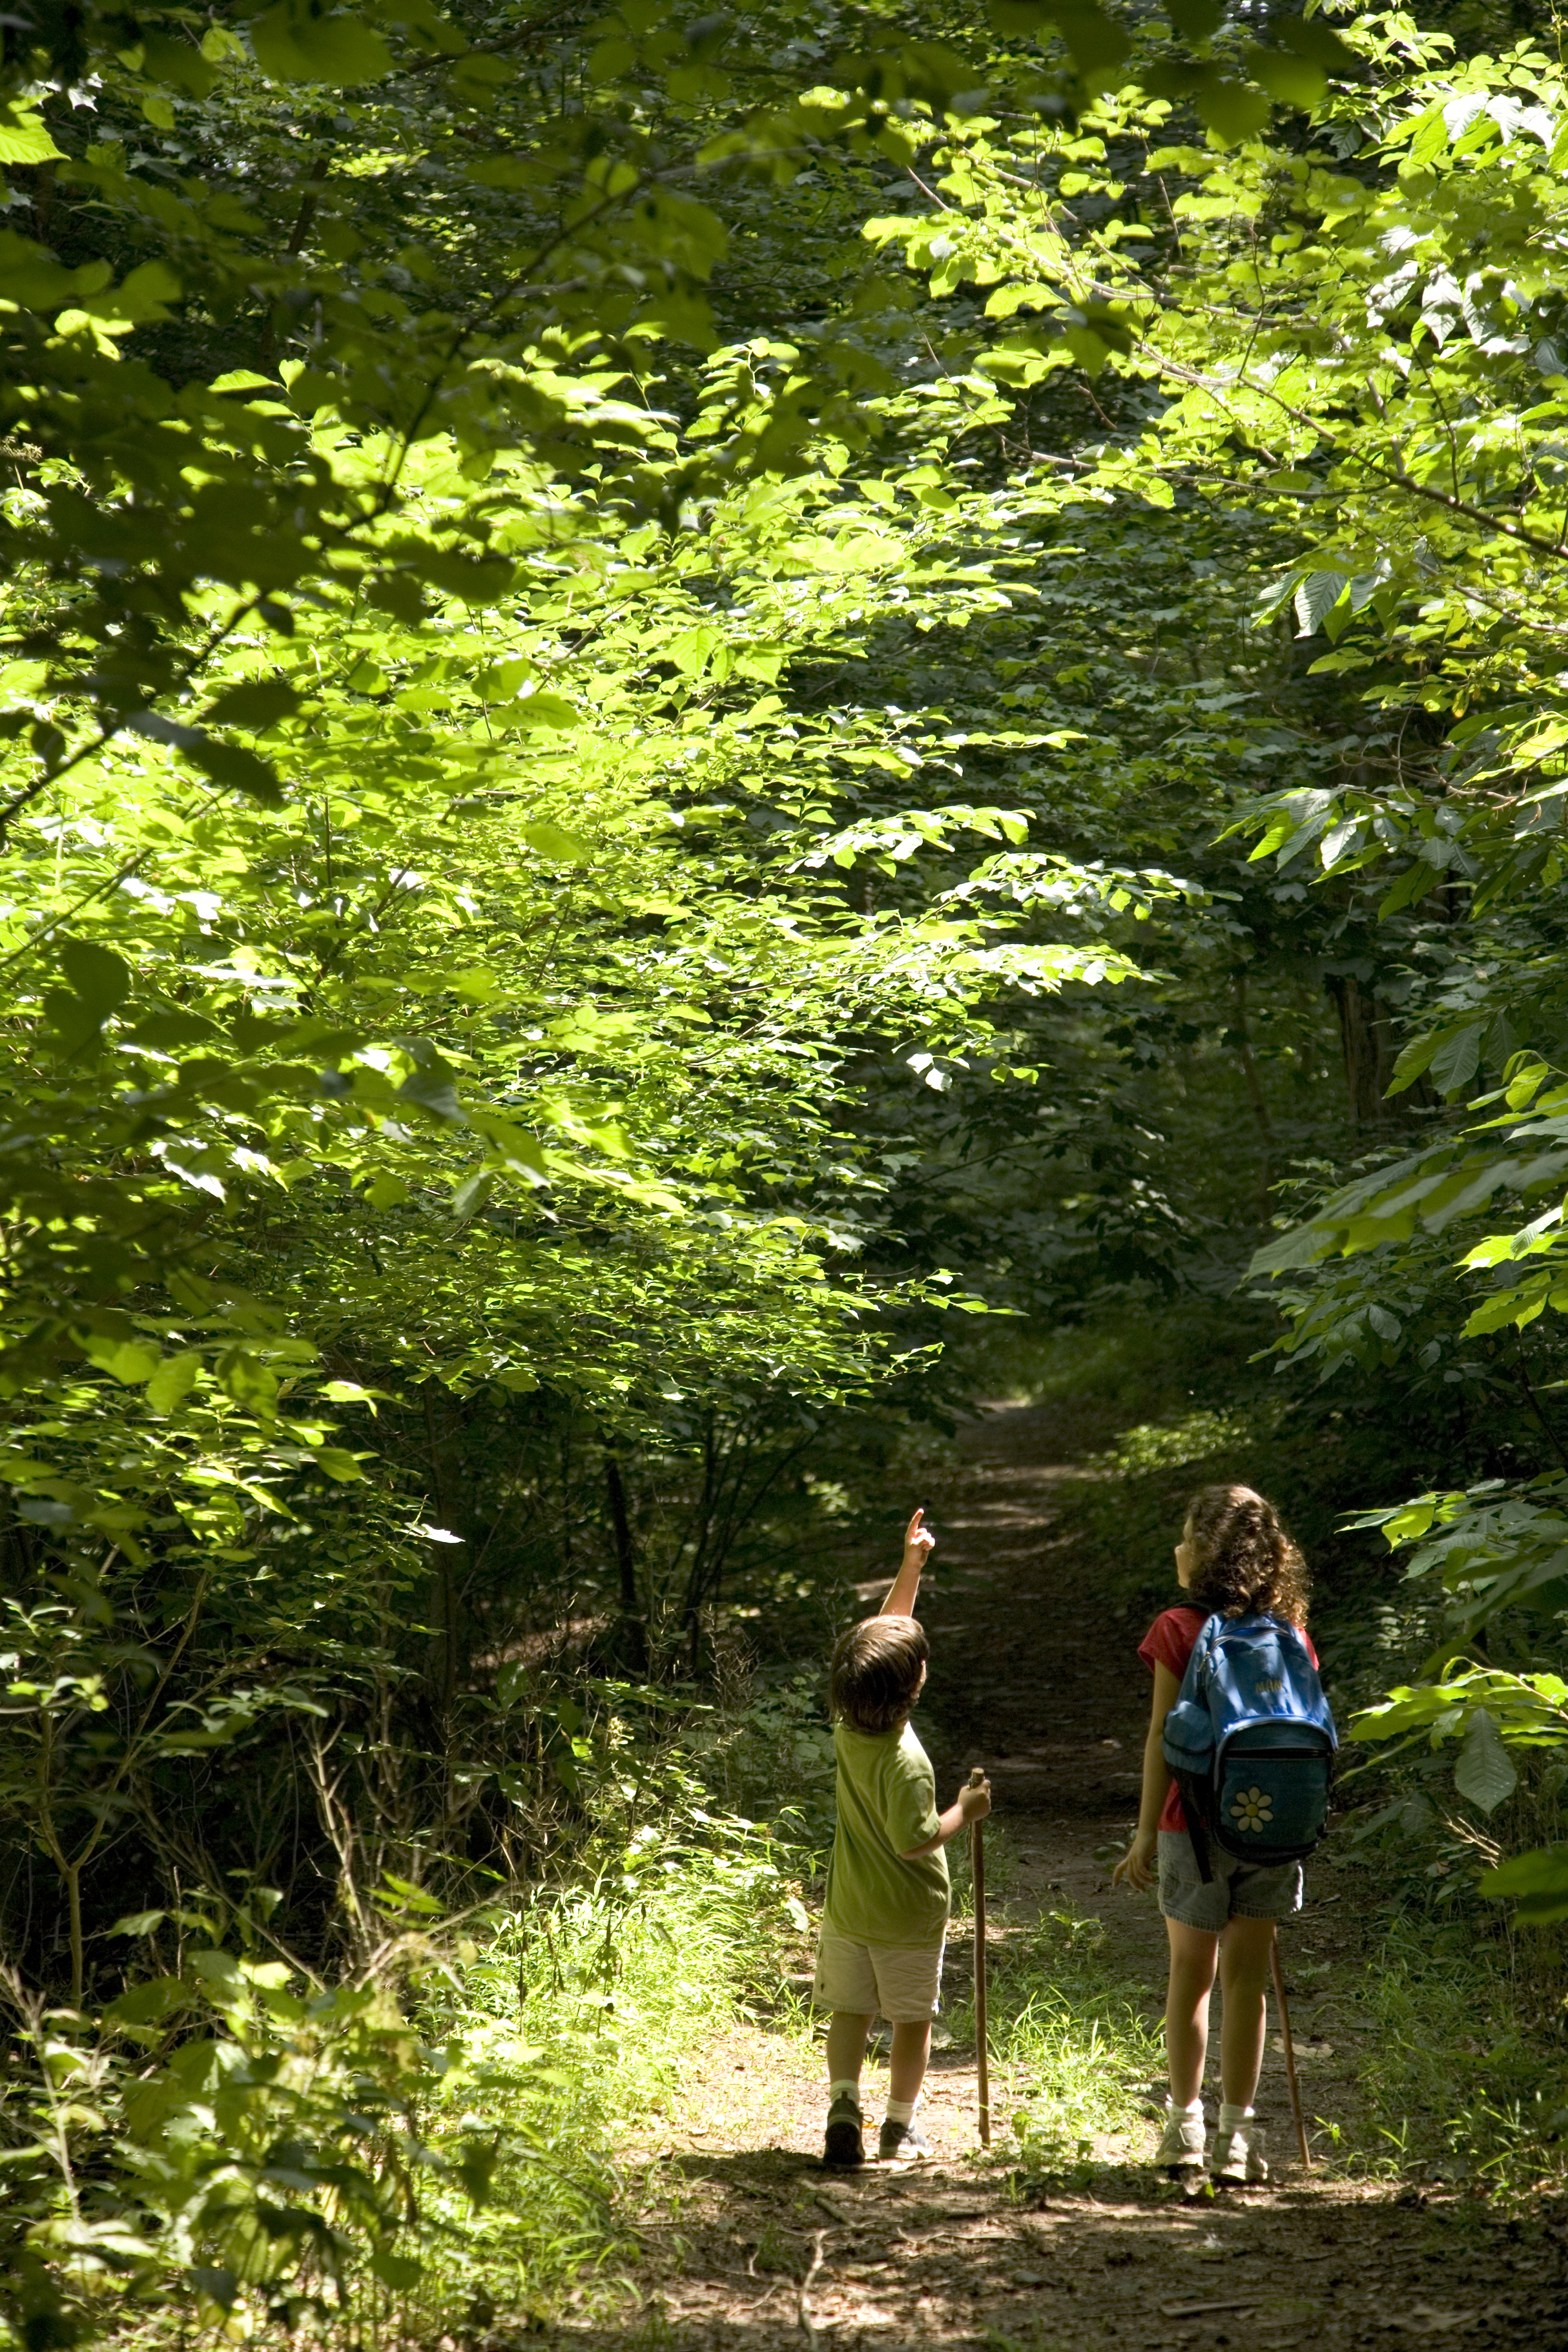 Children walking on a wooded path